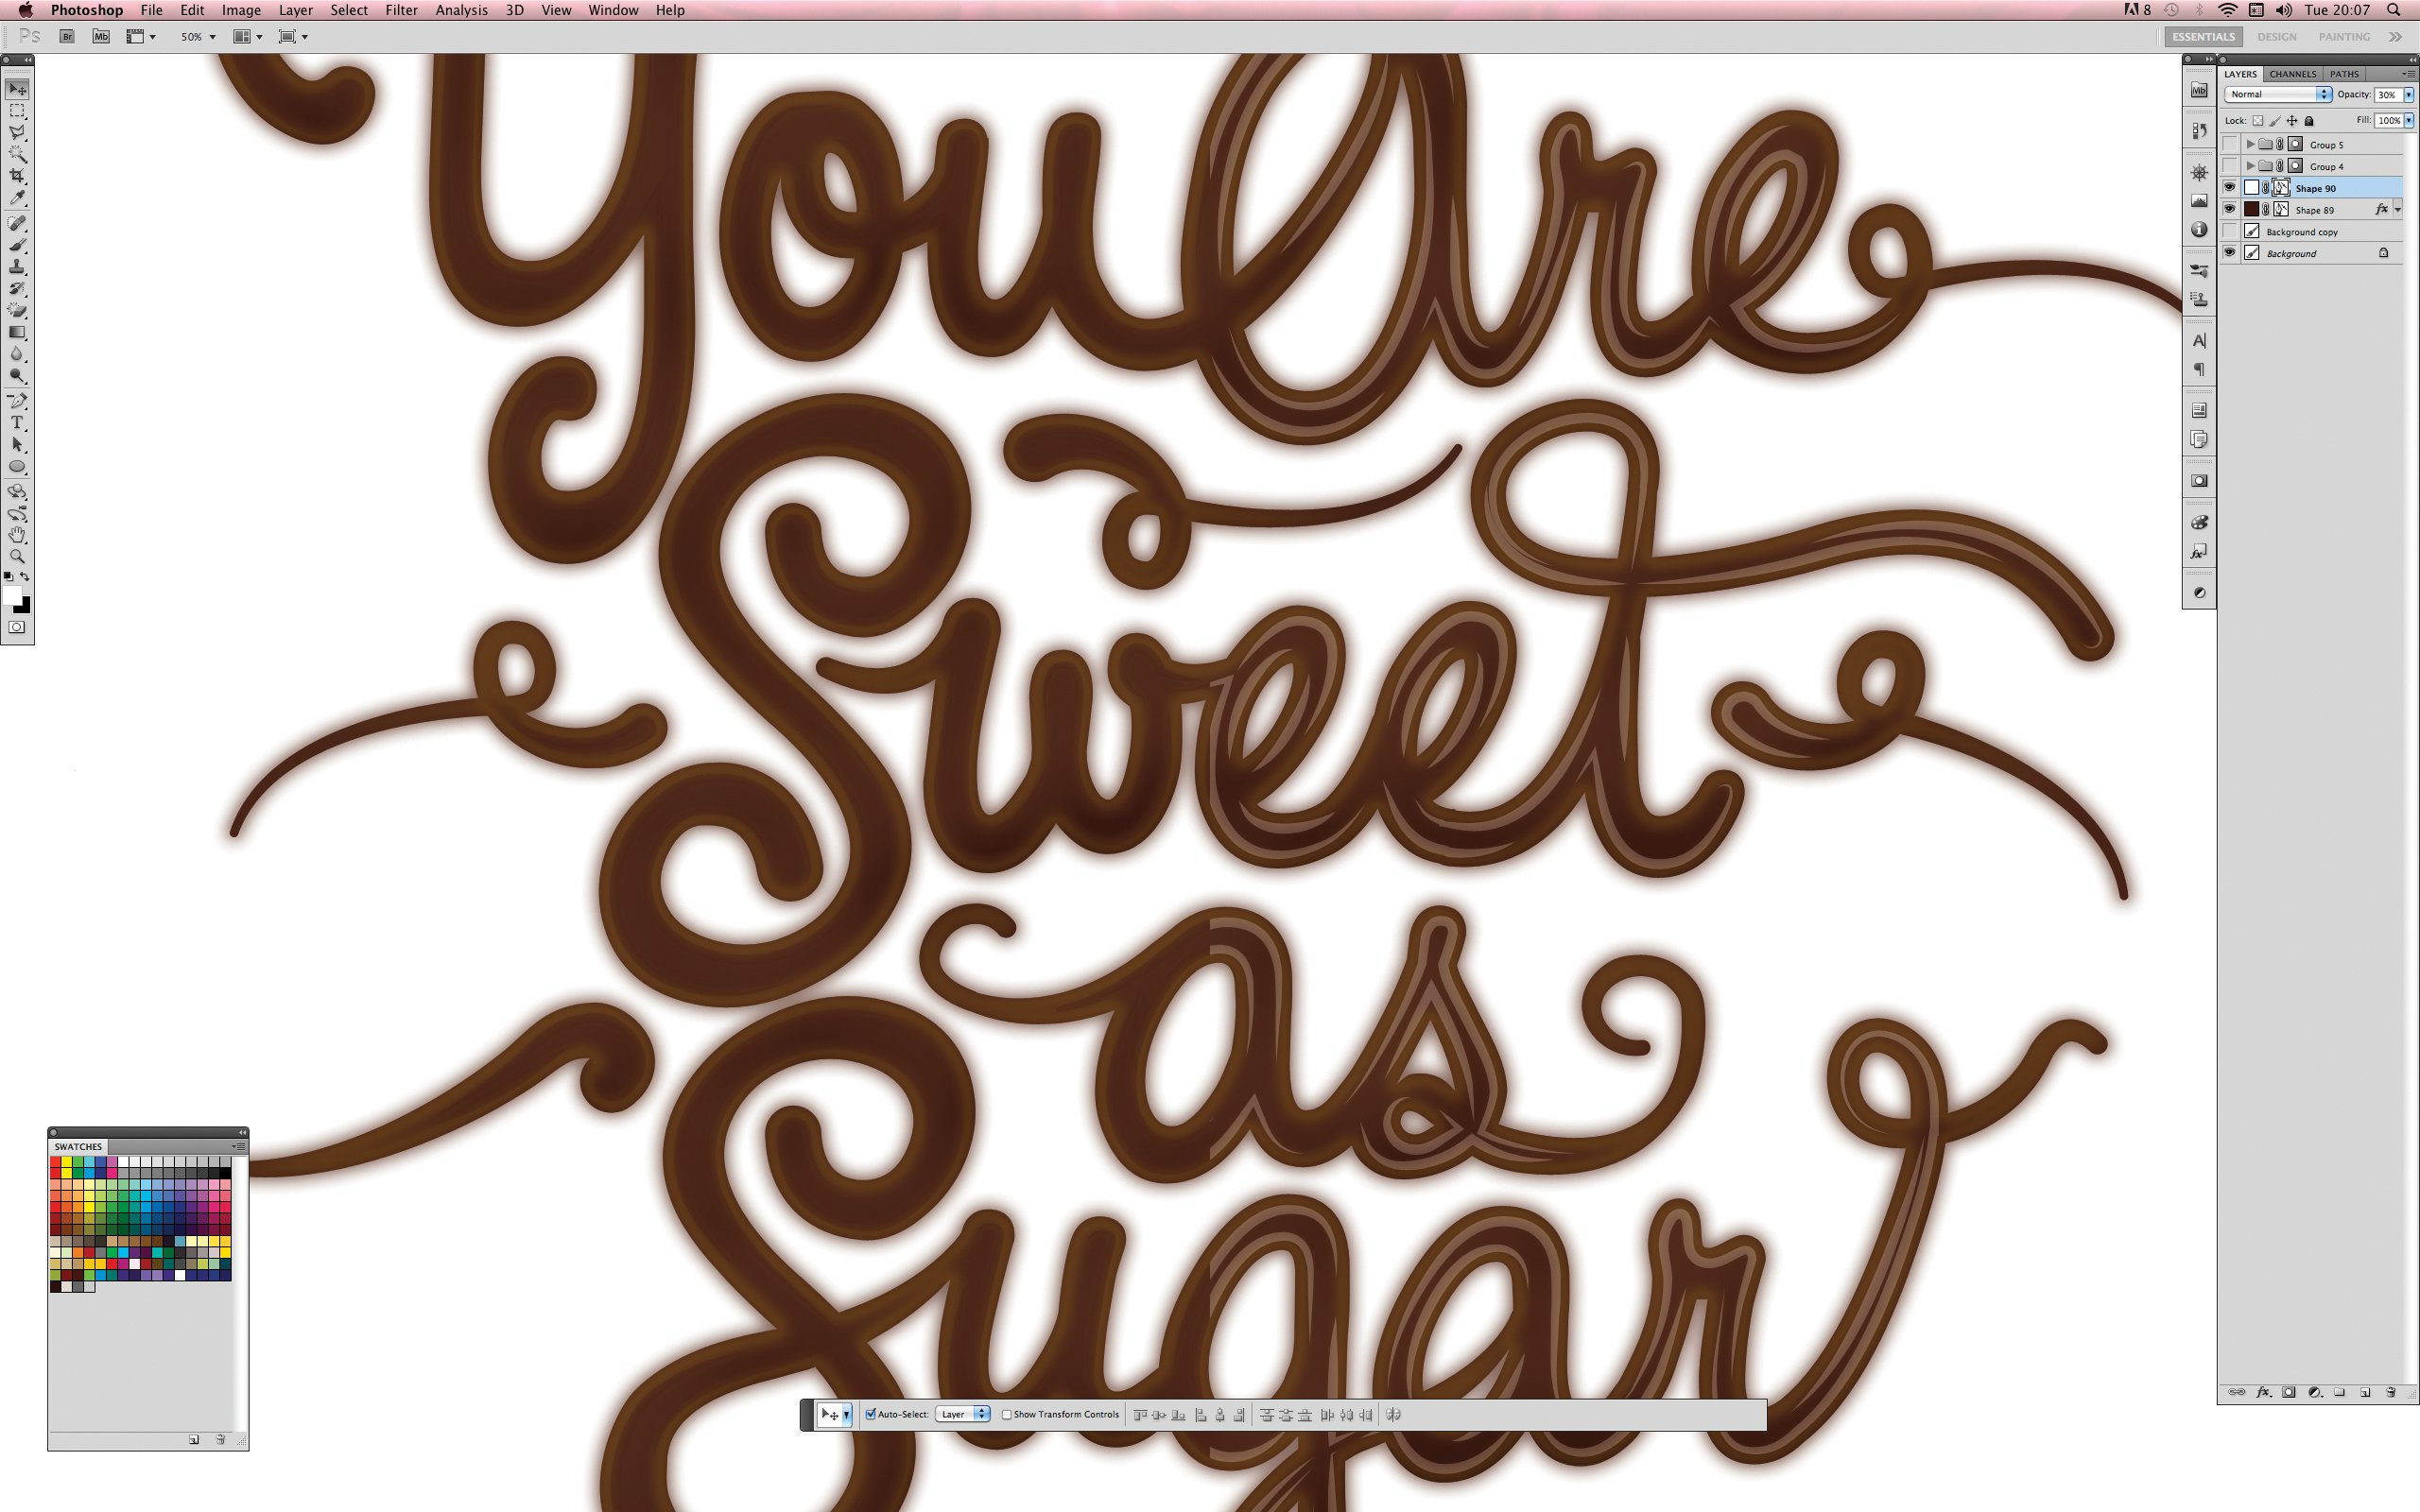 9 Dripping Chocolate Font Images